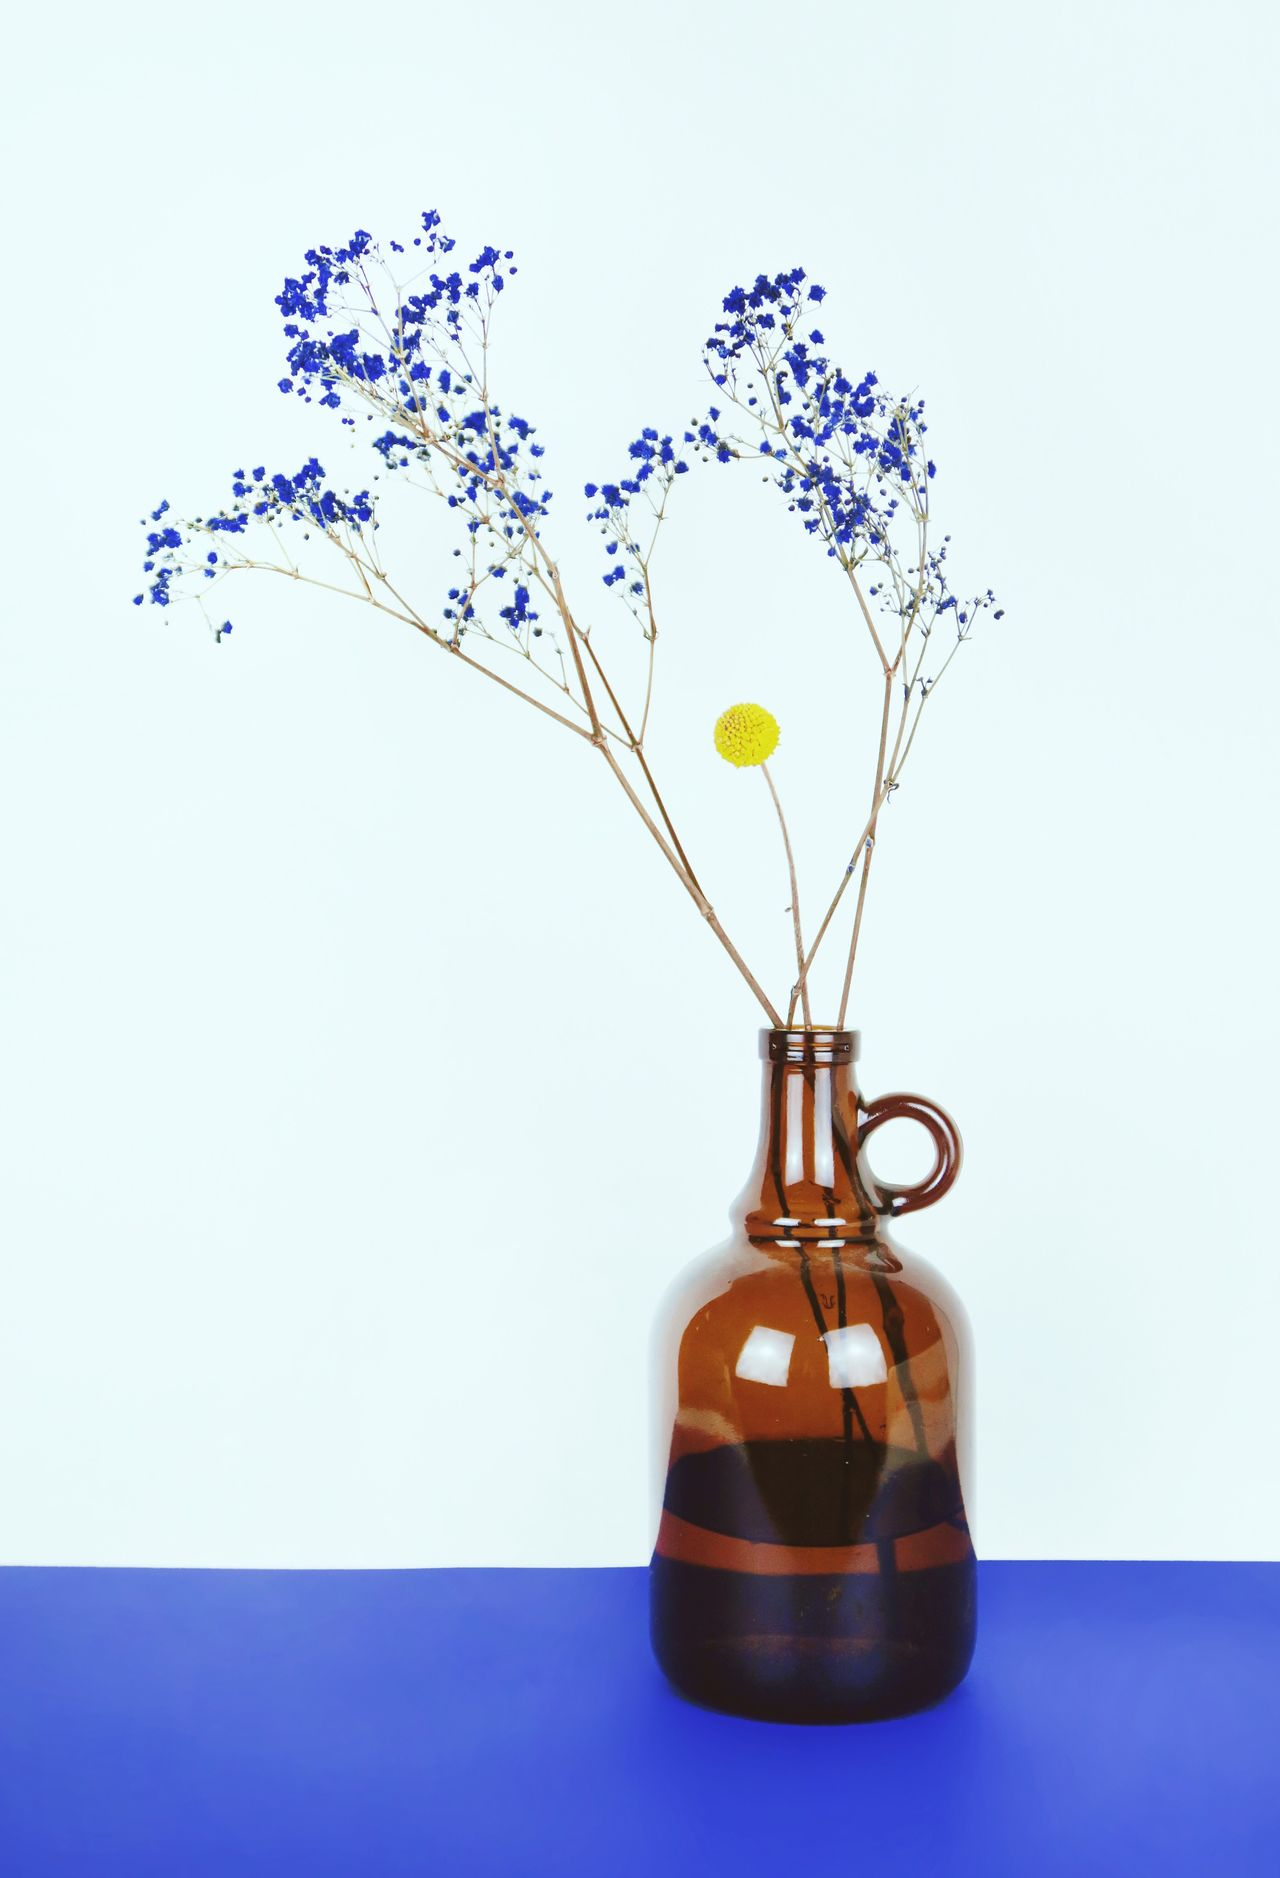 Vase Flower Studio Shot Table Lavender Plant Nature No People Growth Indoors  White Background Plant Flowers Spring Dry Flower  Blue Flowers Flower Arrangement Spring Flowers Fragility Close-up Day